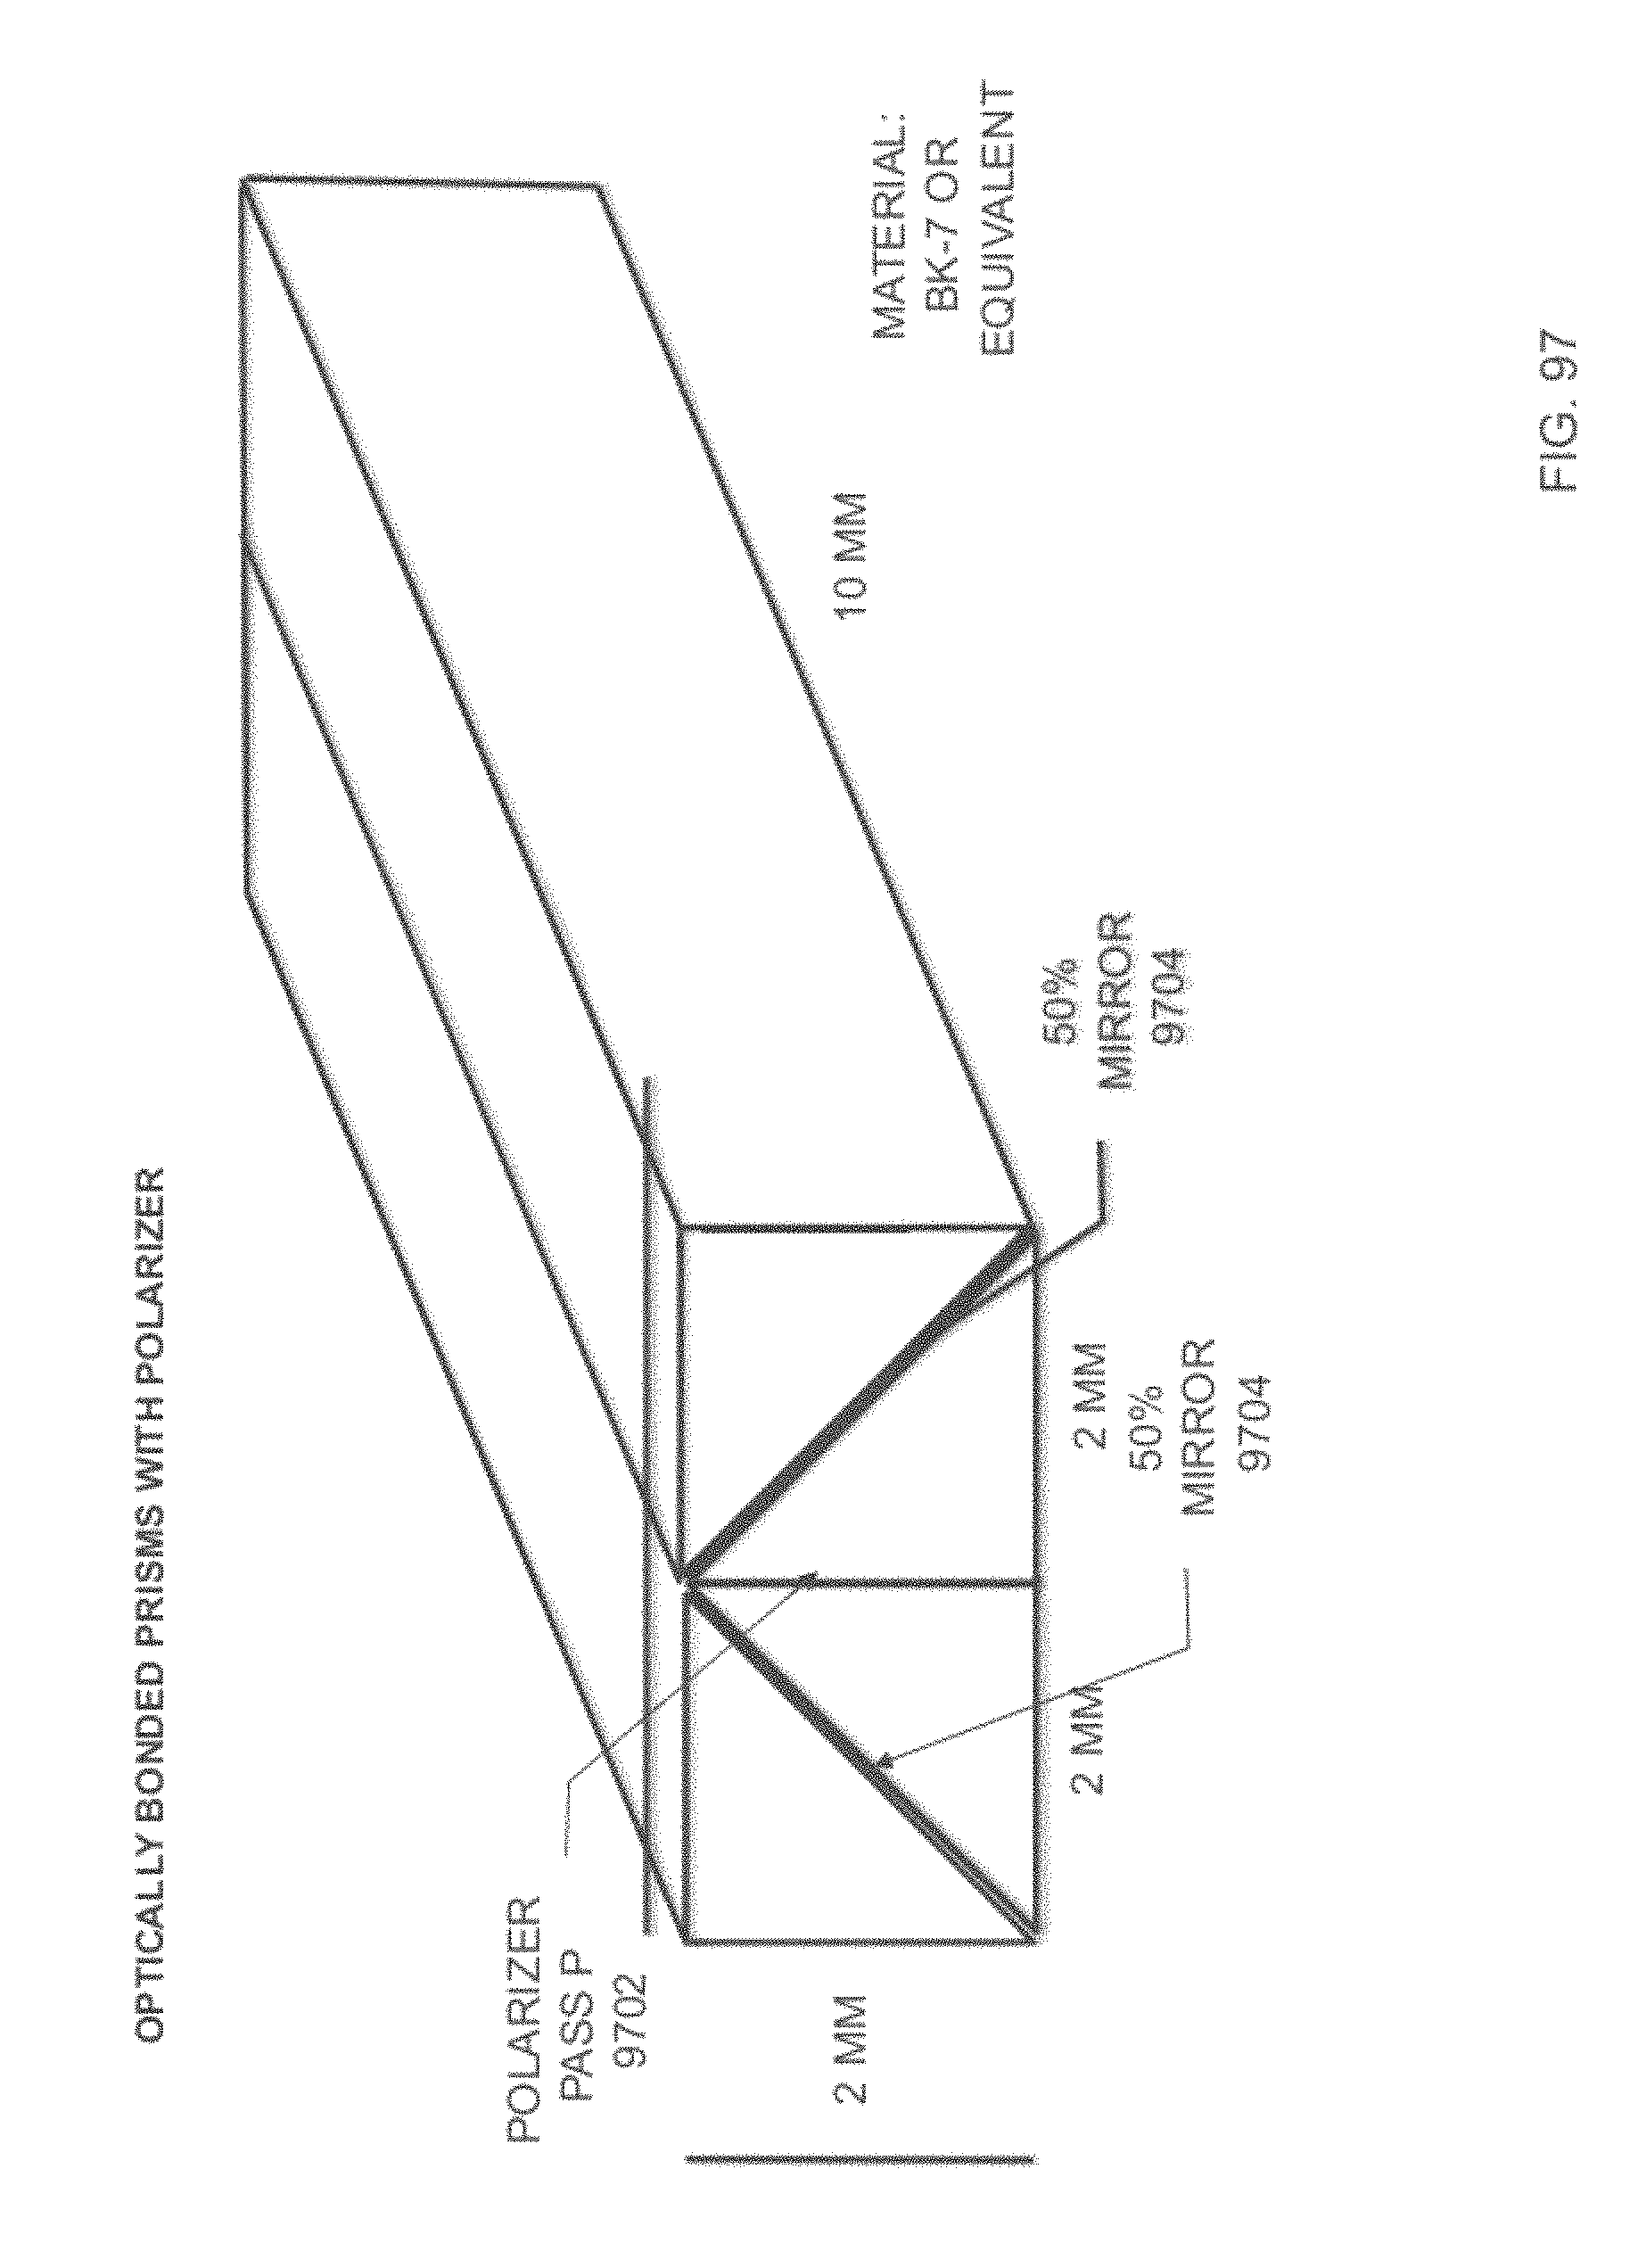 patent us 9 759 917 b2 Telescoping Pole for Blind patent images